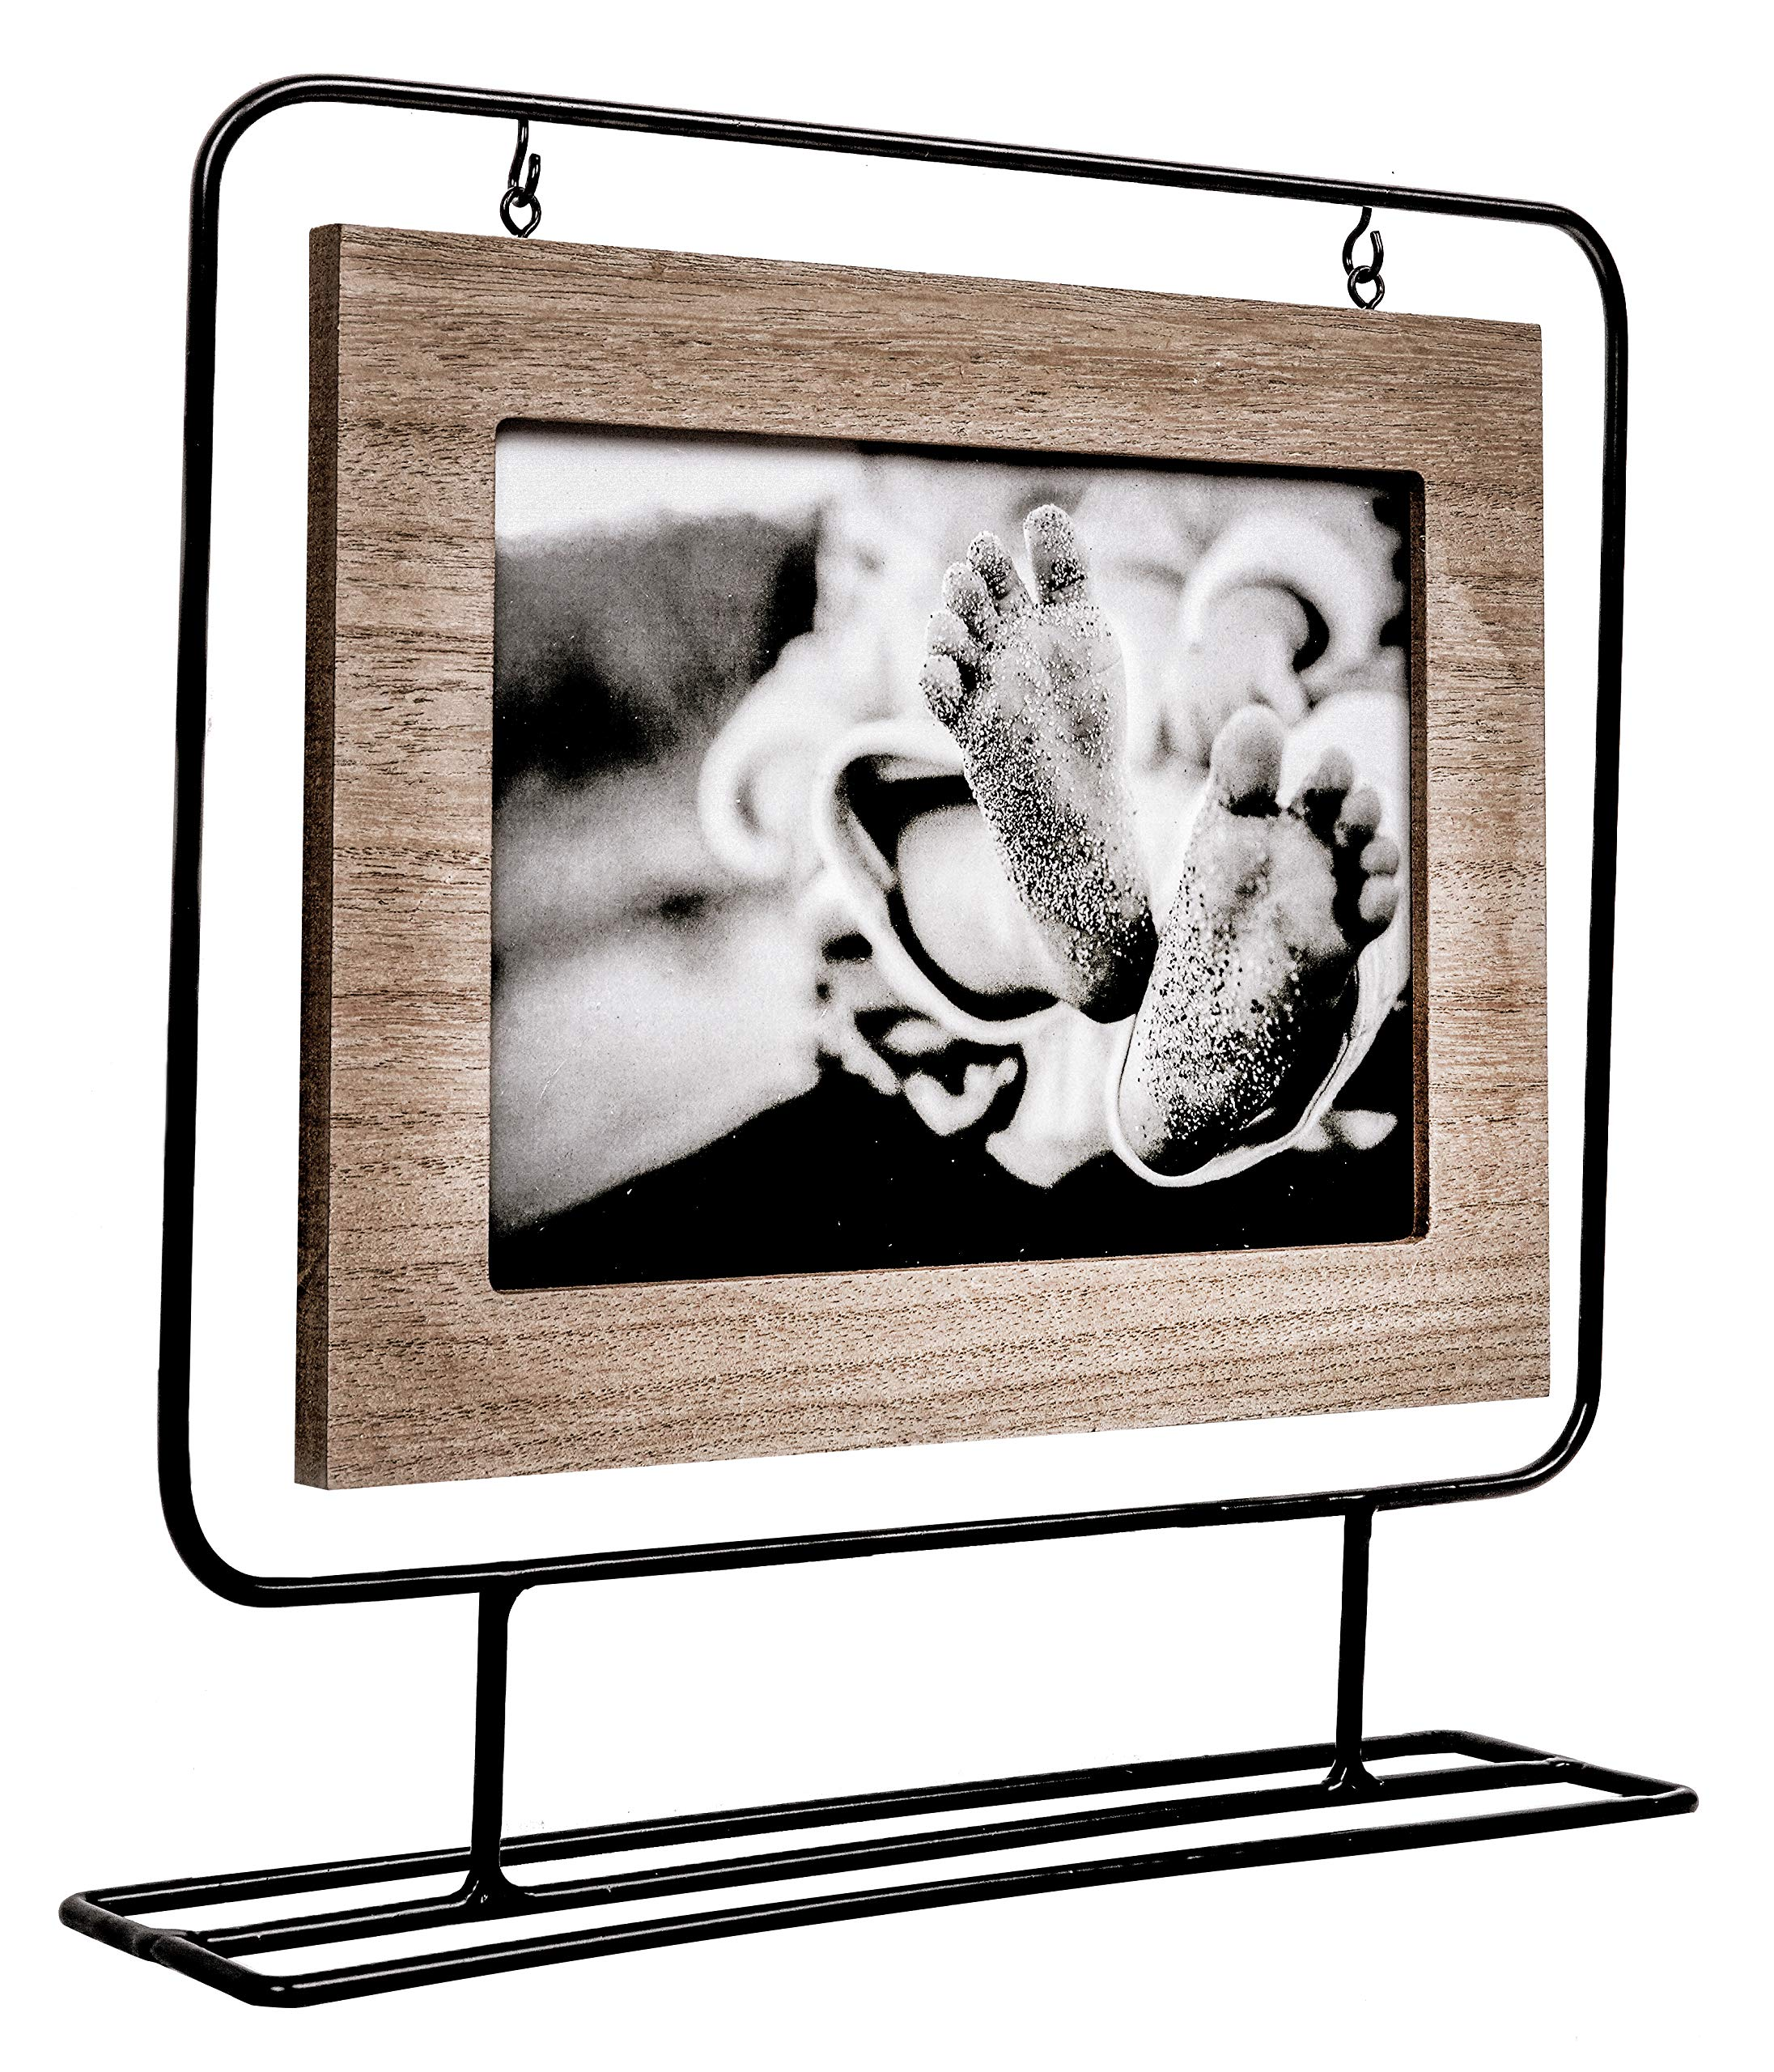 Space Art Deco 7x5 Black Wire Stand Picture Frame - Holds One 7x5 Photo - Black Iron - Tabletop Display - Landscape - Hanging Frame - Flexible Metal Tabs - Light Frame Border (7x5) by Space Art Deco